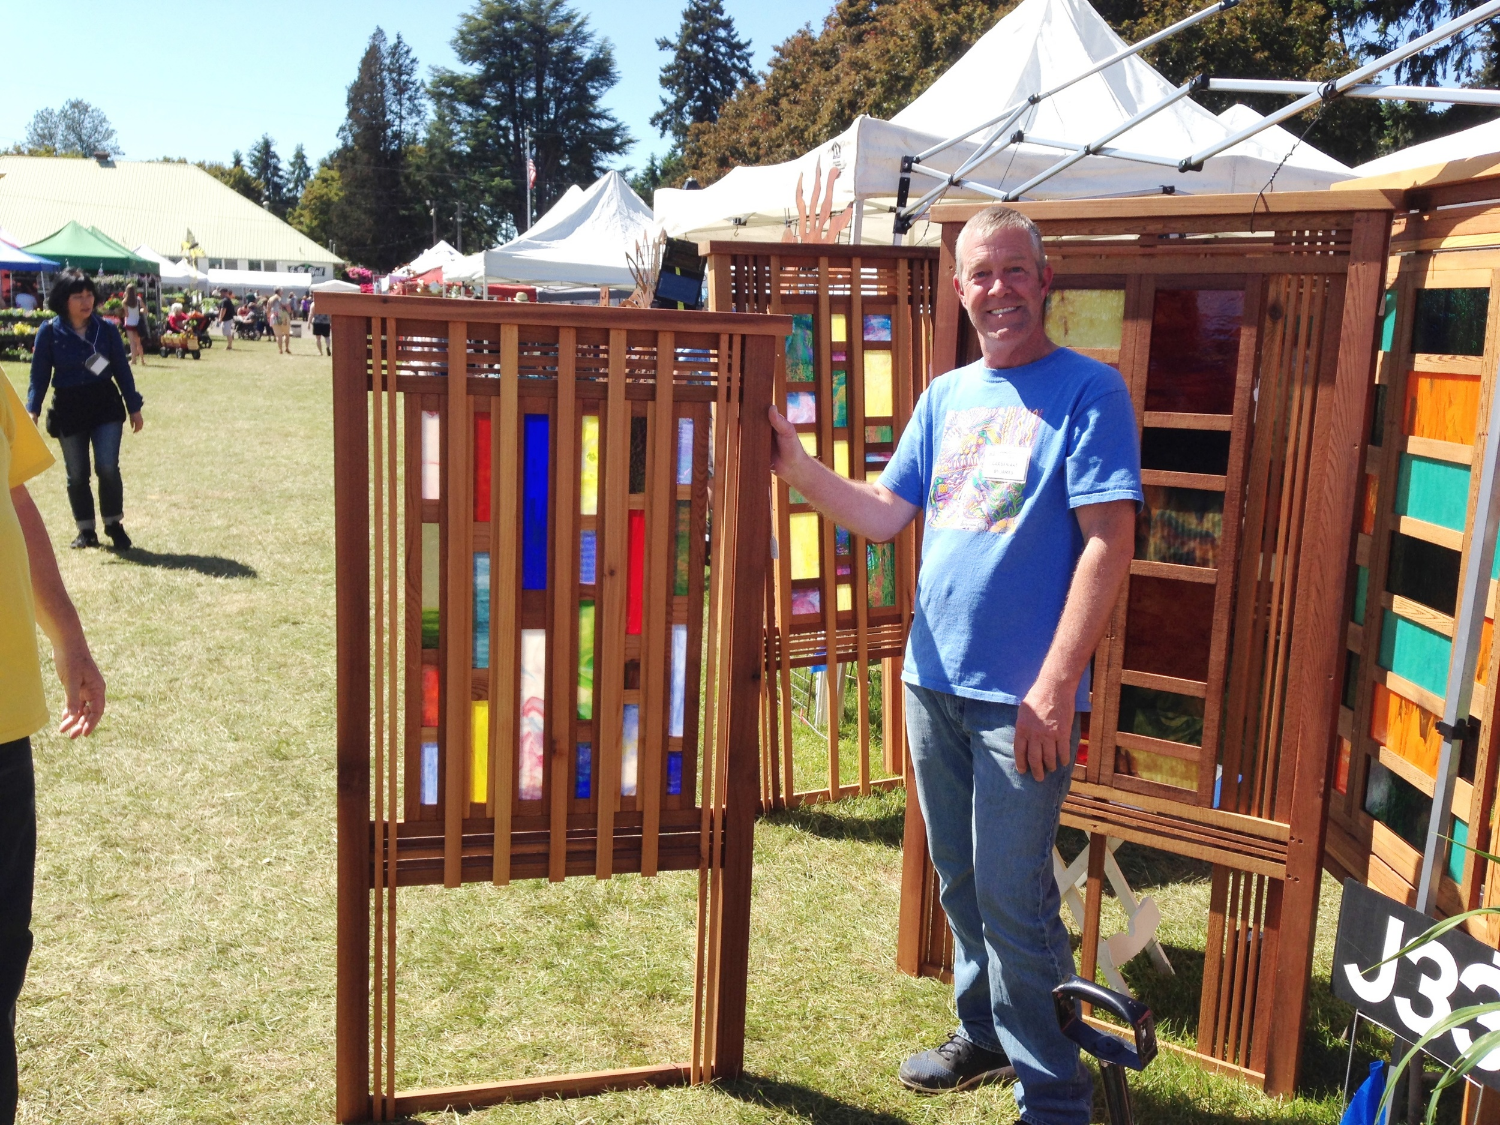 Carpentry and glass artist James Merrigan, of Portland OR, at the Canby Master Gardeners Fair 2016.